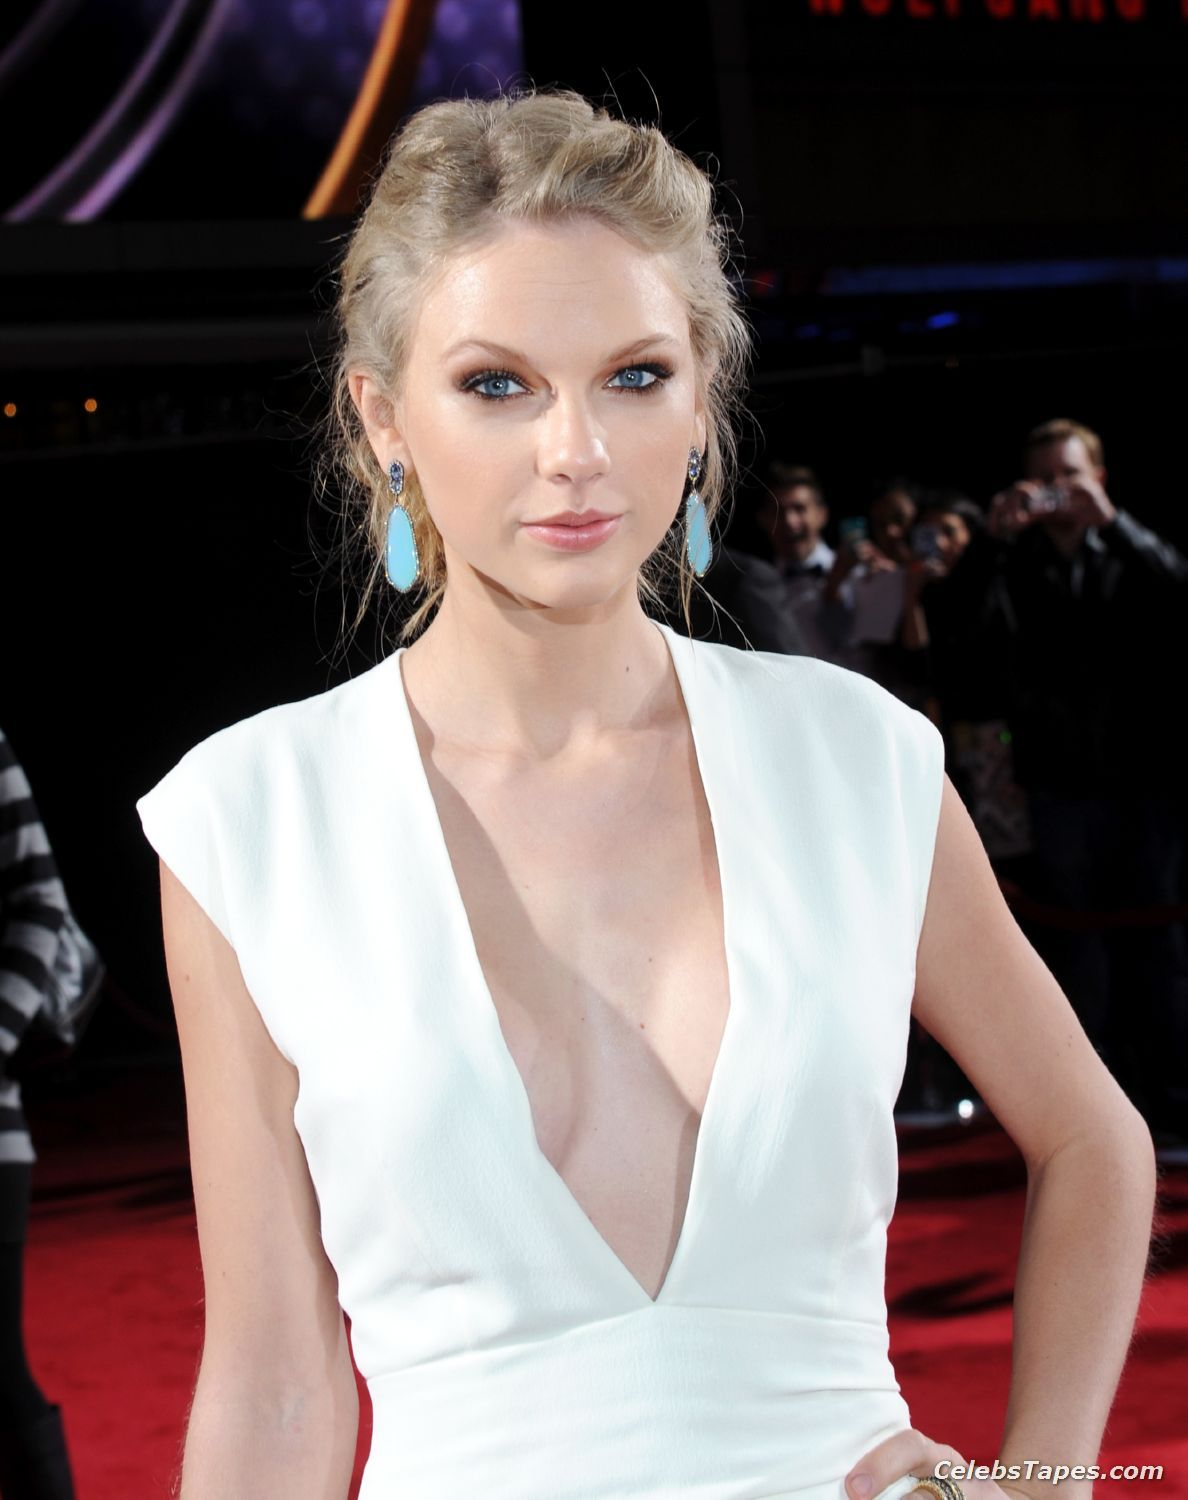 taylor swift leaked sex video Watch Taylor swift leaked video hq porn Taylor swift leaked video video and get  to mobile.